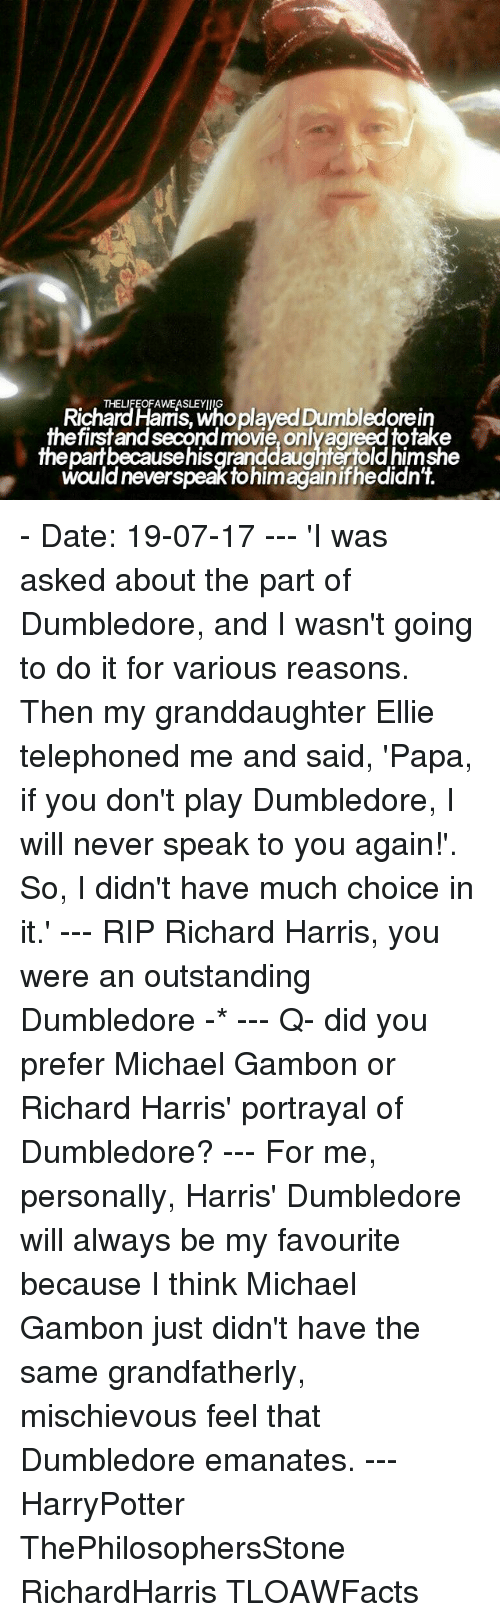 Dumbledore, Memes, and Date: Richardlaris, Wnoplayed Dumbledorein  THELIFEOFAWEASLEYIIIG  firstand second movie, onlyagreed totake  thepartbecausehisgranddaughtertold himshe  would neverspeak tohimagainifhedidn't. - Date: 19-07-17 --- 'I was asked about the part of Dumbledore, and I wasn't going to do it for various reasons. Then my granddaughter Ellie telephoned me and said, 'Papa, if you don't play Dumbledore, I will never speak to you again!'. So, I didn't have much choice in it.' --- RIP Richard Harris, you were an outstanding Dumbledore -* --- Q- did you prefer Michael Gambon or Richard Harris' portrayal of Dumbledore? --- For me, personally, Harris' Dumbledore will always be my favourite because I think Michael Gambon just didn't have the same grandfatherly, mischievous feel that Dumbledore emanates. --- HarryPotter ThePhilosophersStone RichardHarris TLOAWFacts